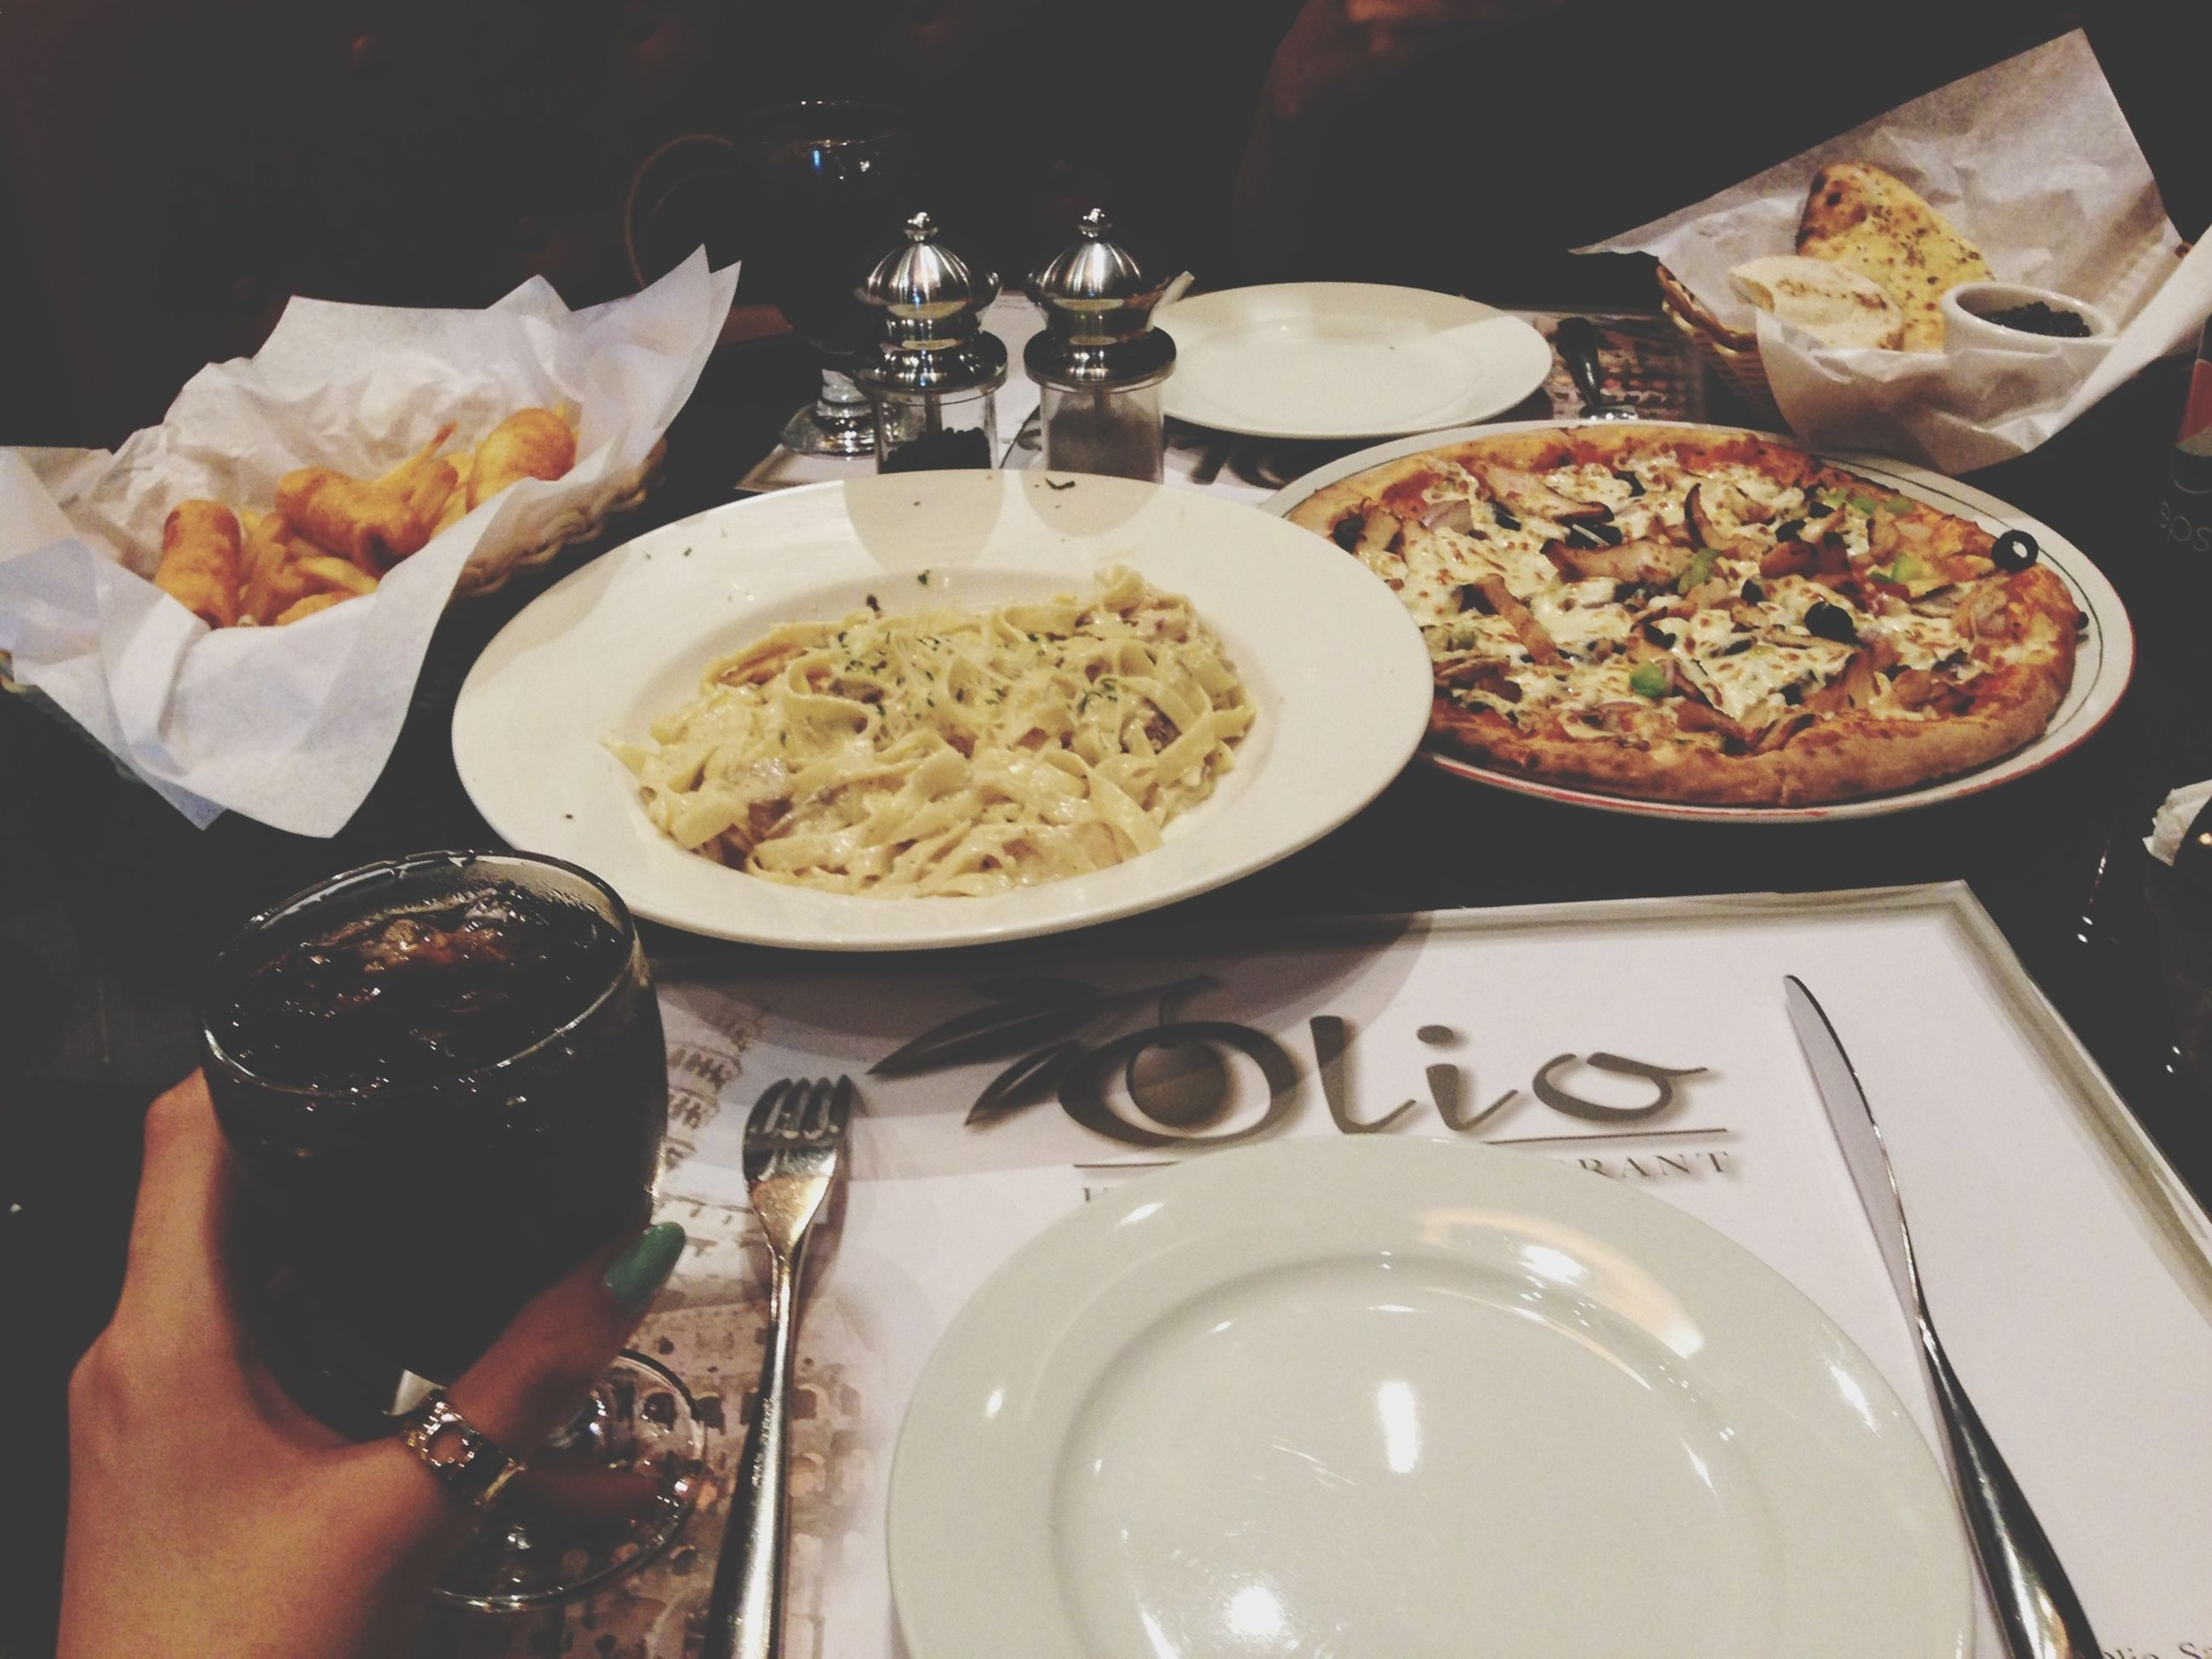 food and drink, food, person, indoors, freshness, holding, lifestyles, part of, ready-to-eat, plate, leisure activity, cropped, unrecognizable person, table, men, drink